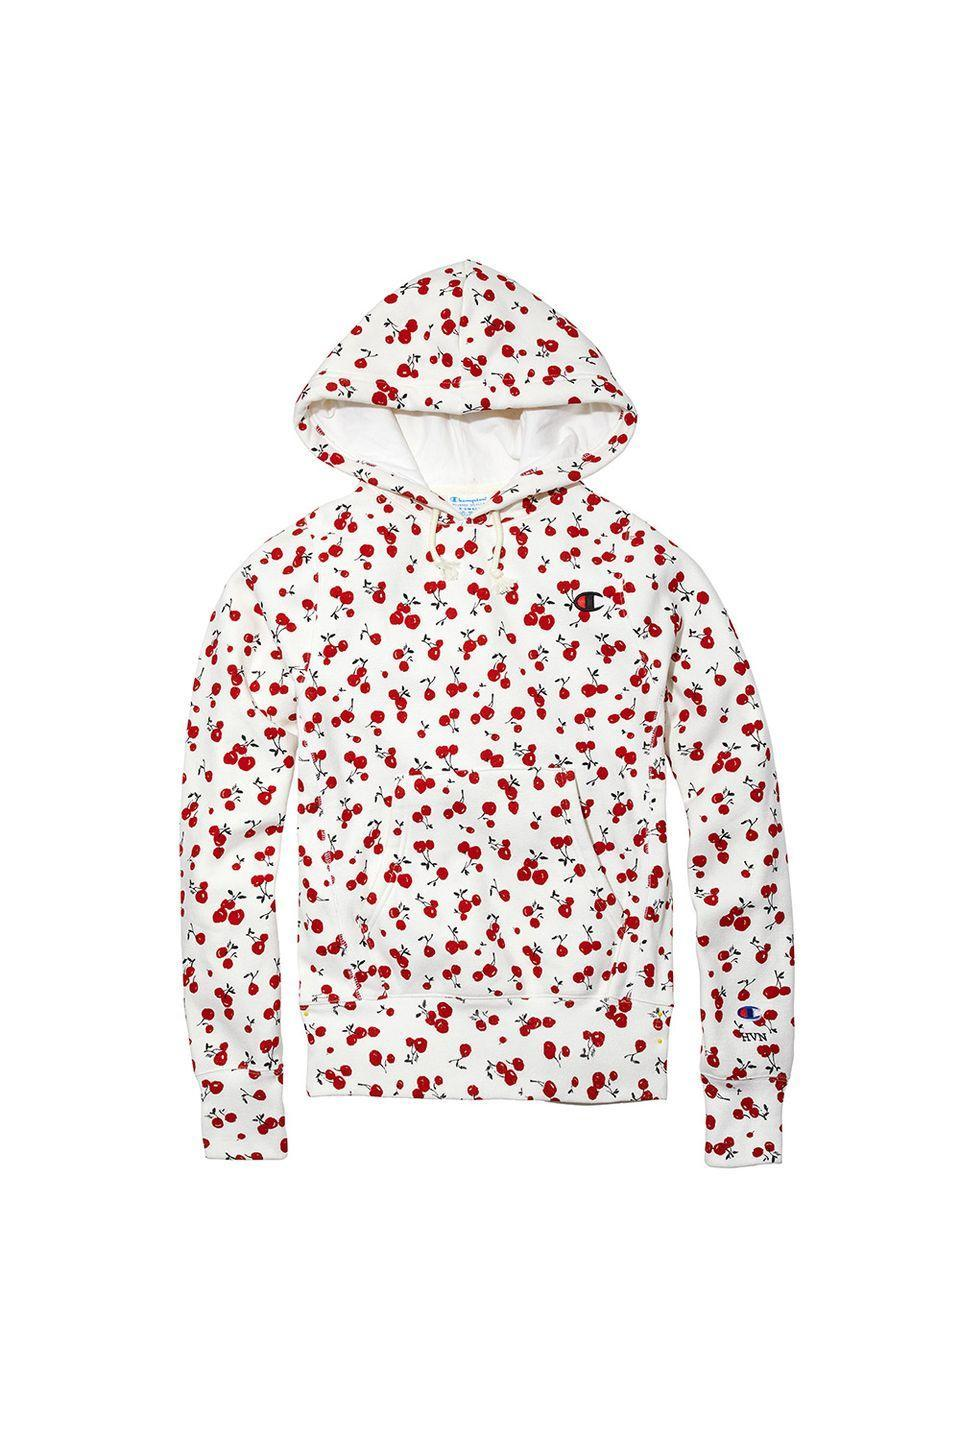 """<p>Cherries are a guaranteed pick-me-up, especially when they're all over your fave sweatshirt. </p><p>Champion + HVN for Urban Outfitters hoodie, $80, <a href=""""https://www.urbanoutfitters.com/"""" rel=""""nofollow noopener"""" target=""""_blank"""" data-ylk=""""slk:urbanoutfitters.com"""" class=""""link rapid-noclick-resp"""">urbanoutfitters.com</a></p>"""